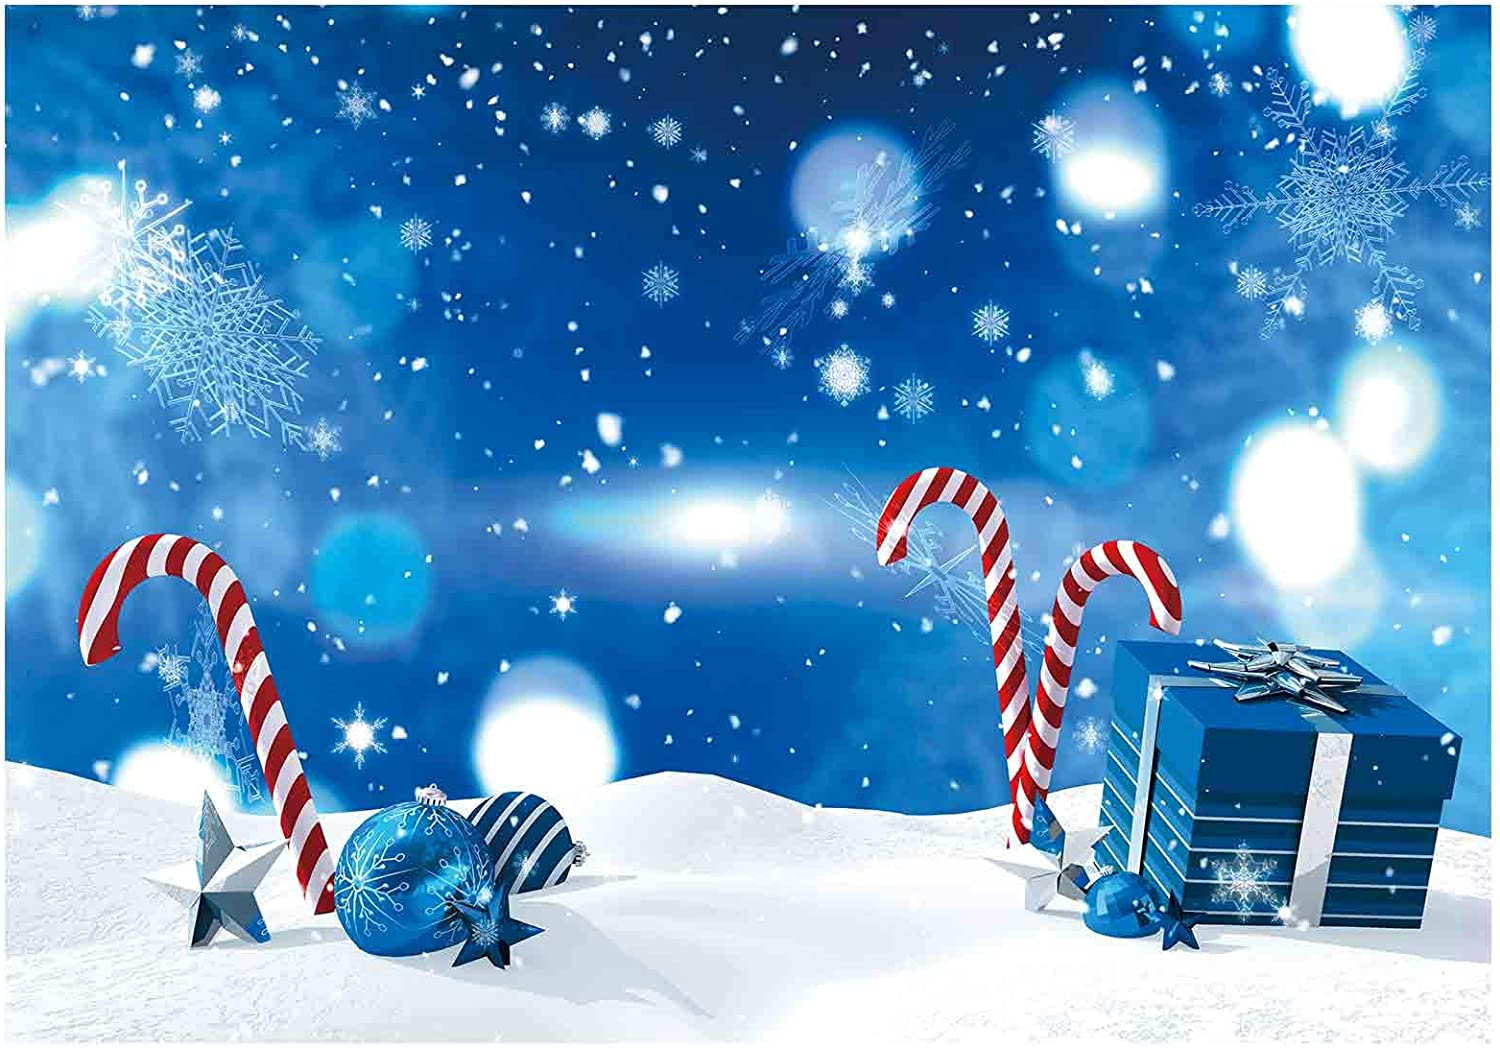 Funnytree Winter Blue Wonderland Theme Backdrop for Boy Baby Shower Birthday Party Photography Background Christmas Snowflake Bokeh Glitter Decor Portrait Cake Table Banner Photo Studio Props 7x5ft